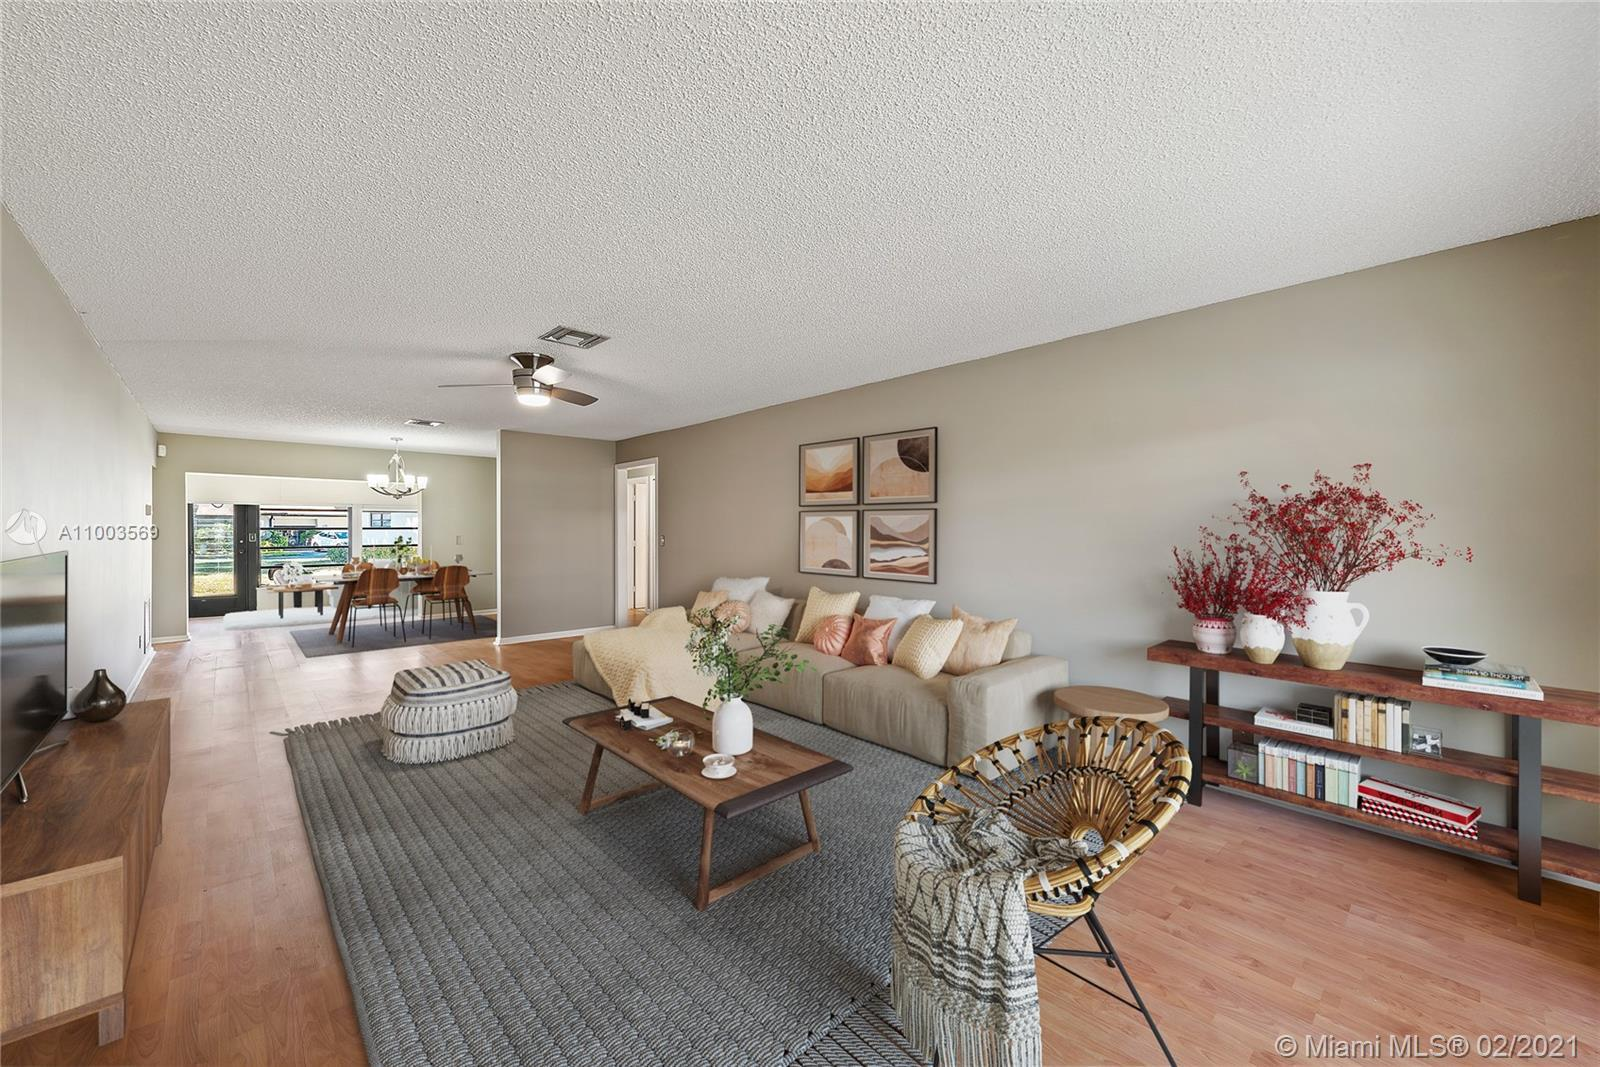 Retreat to your one story, two bedroom villa in the center of the Palm Beaches. Greentree Villas is